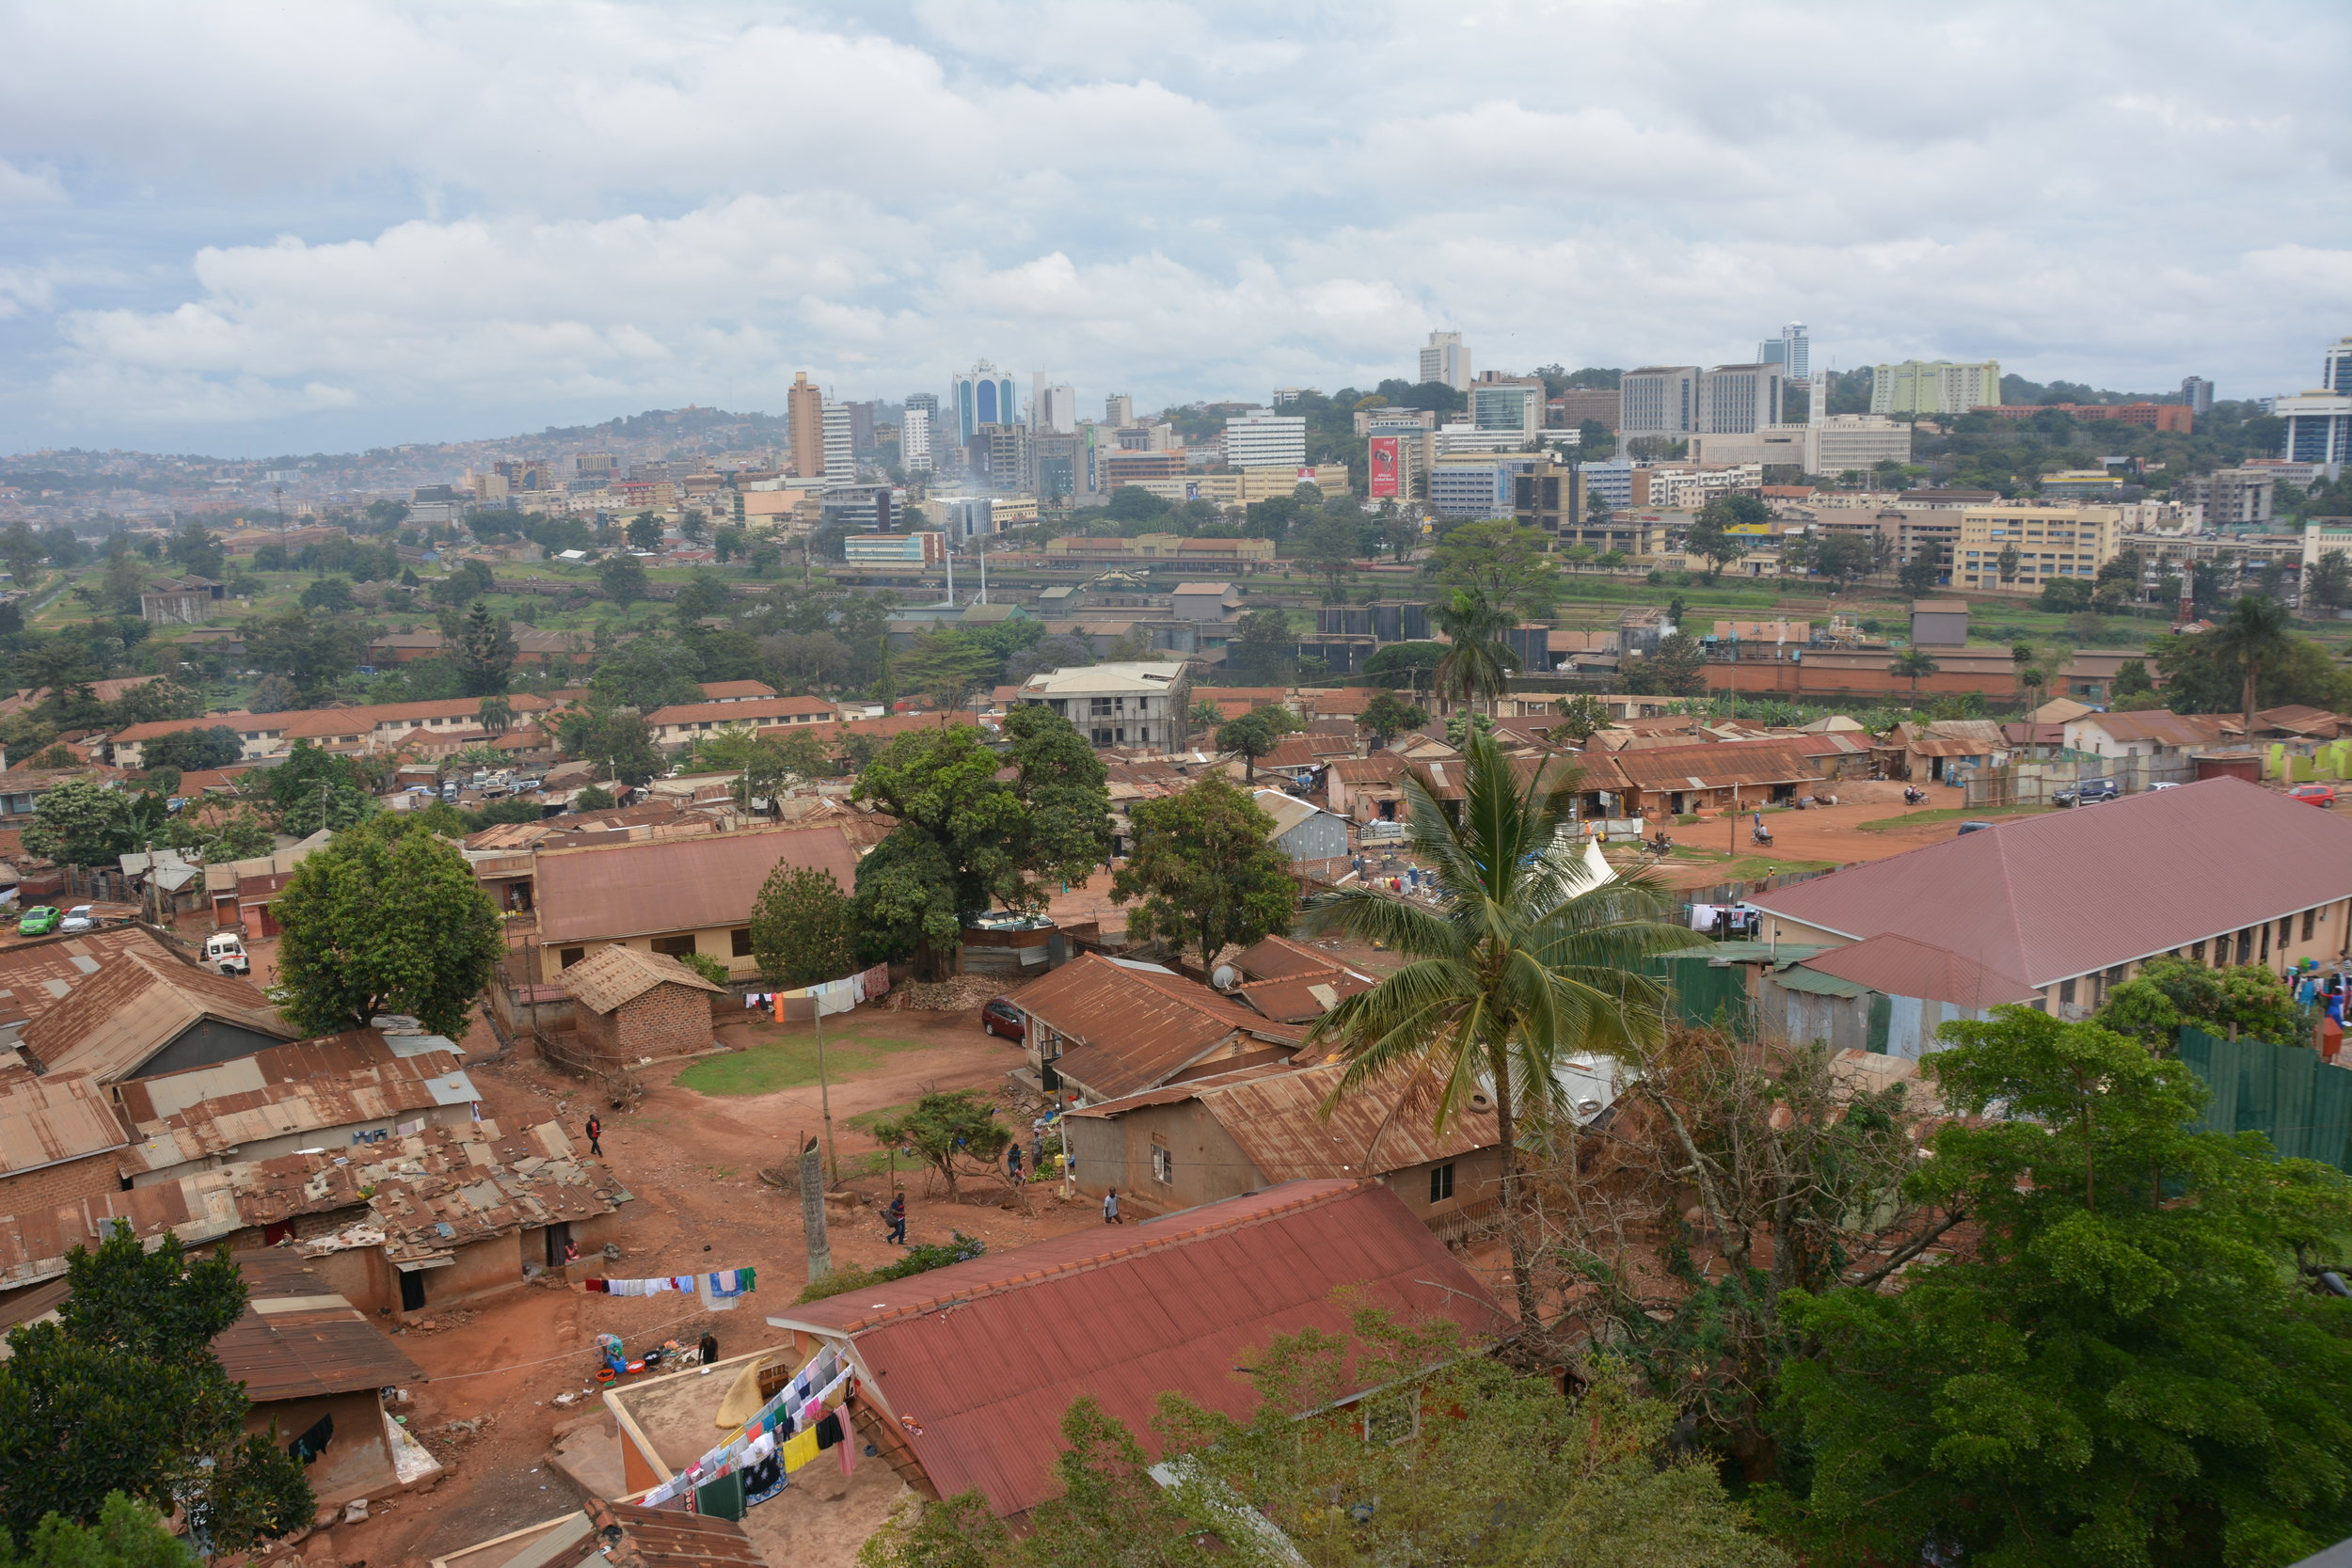 Photo taken from an upper level of Ronald's school, looking toward Kampala's downtown.